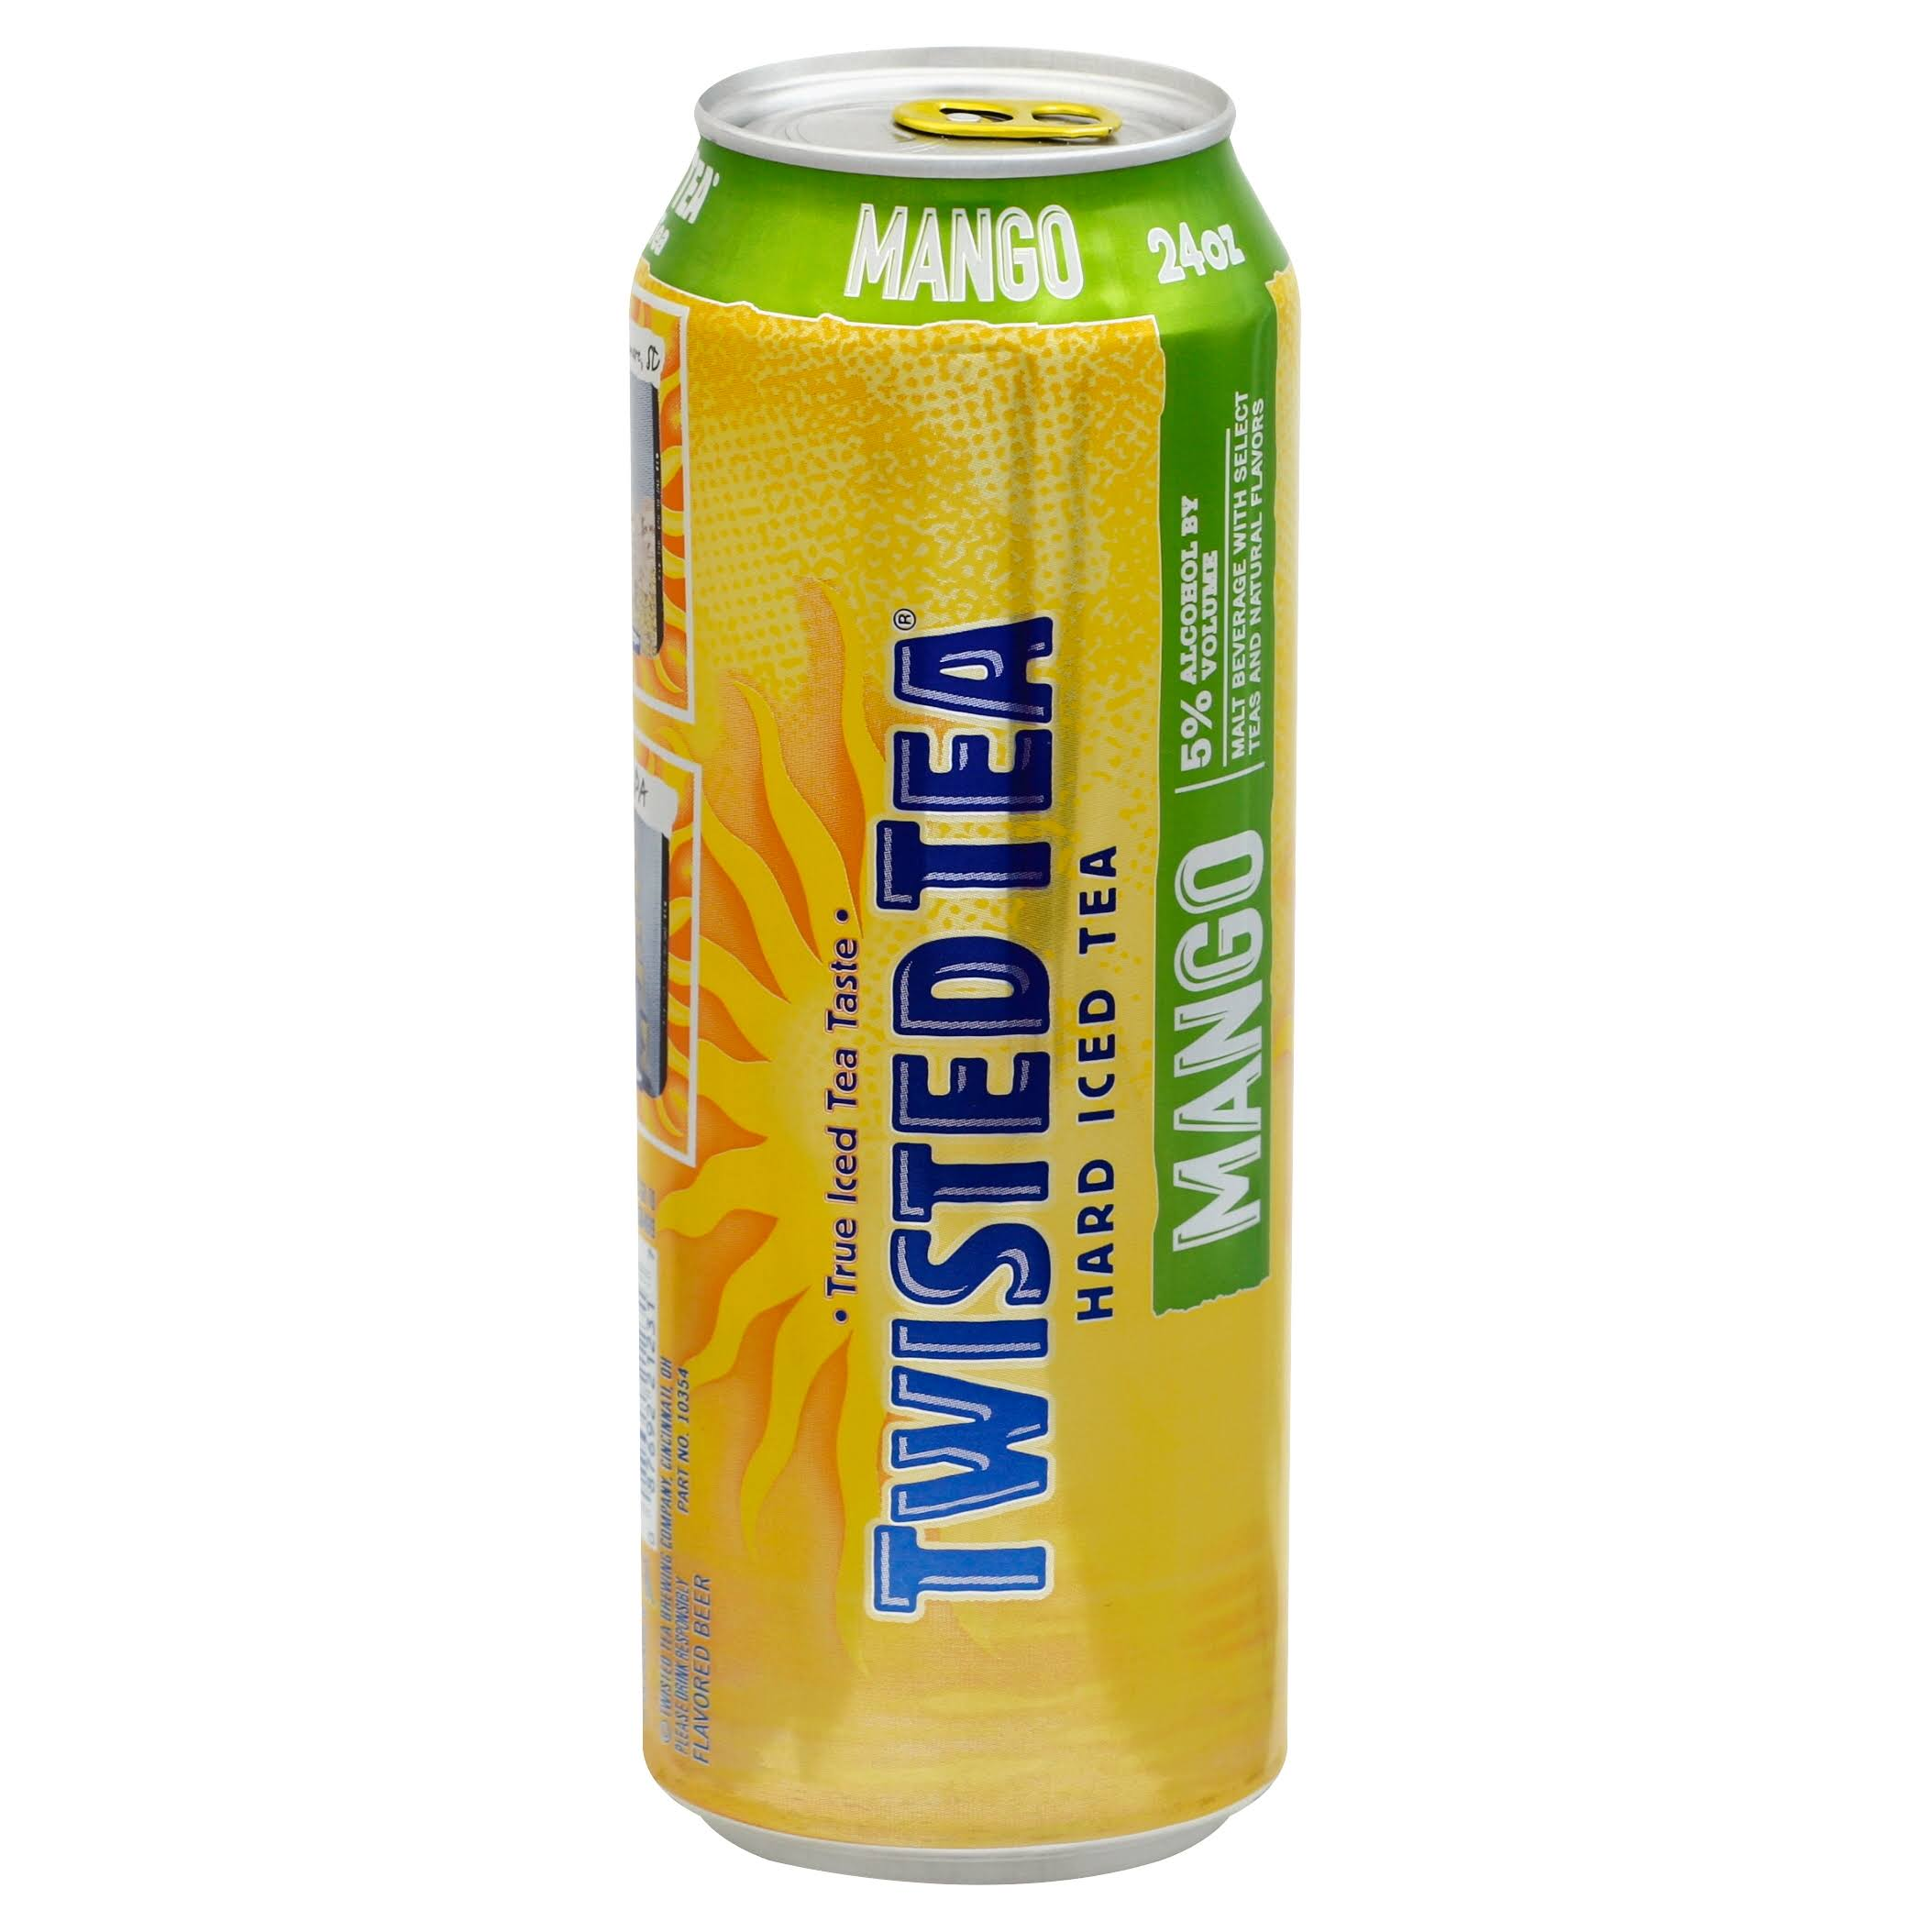 Twisted Hard Iced Tea - Mango, 24oz